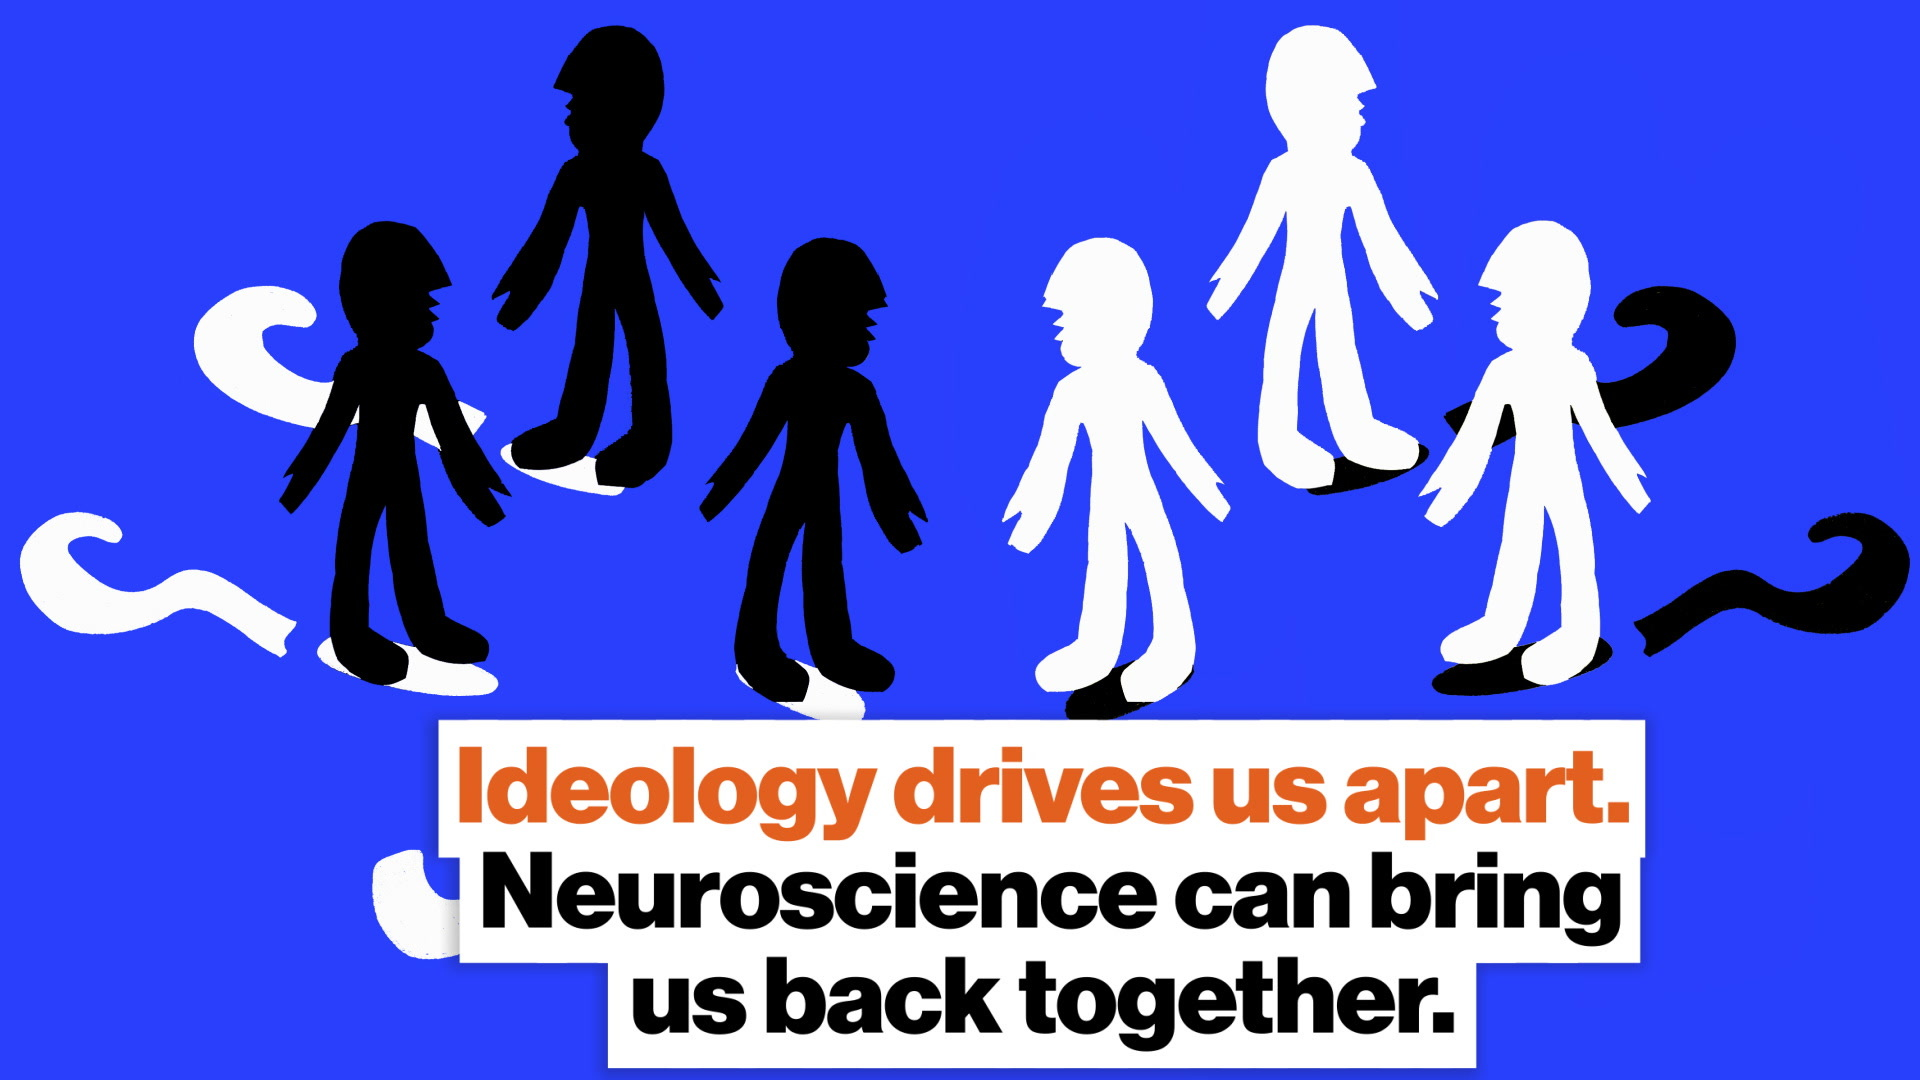 Ideology drives us apart. Neuroscience can bring us back together.